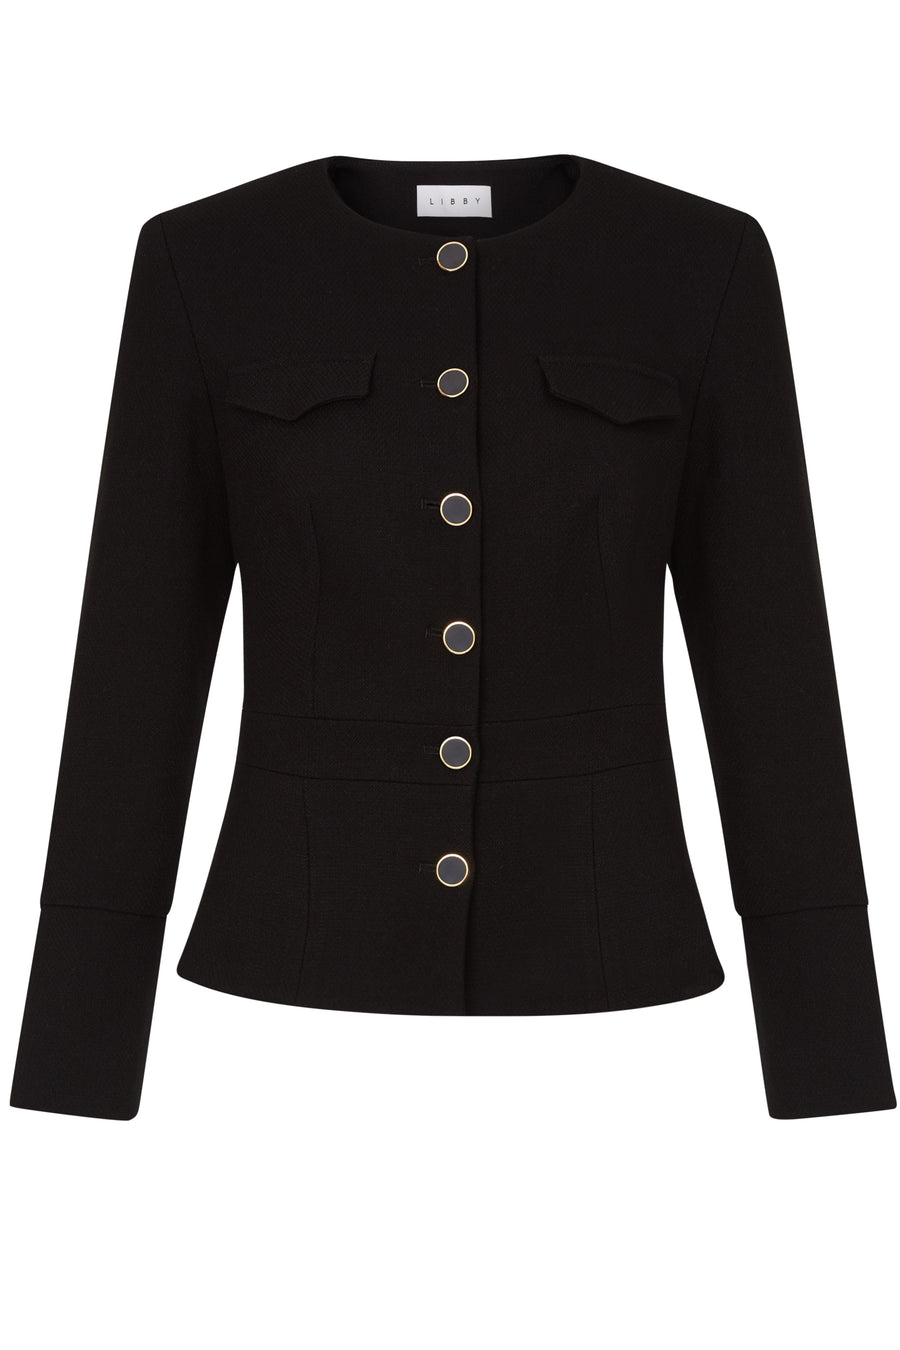 Connaught Black Boucle Jacket